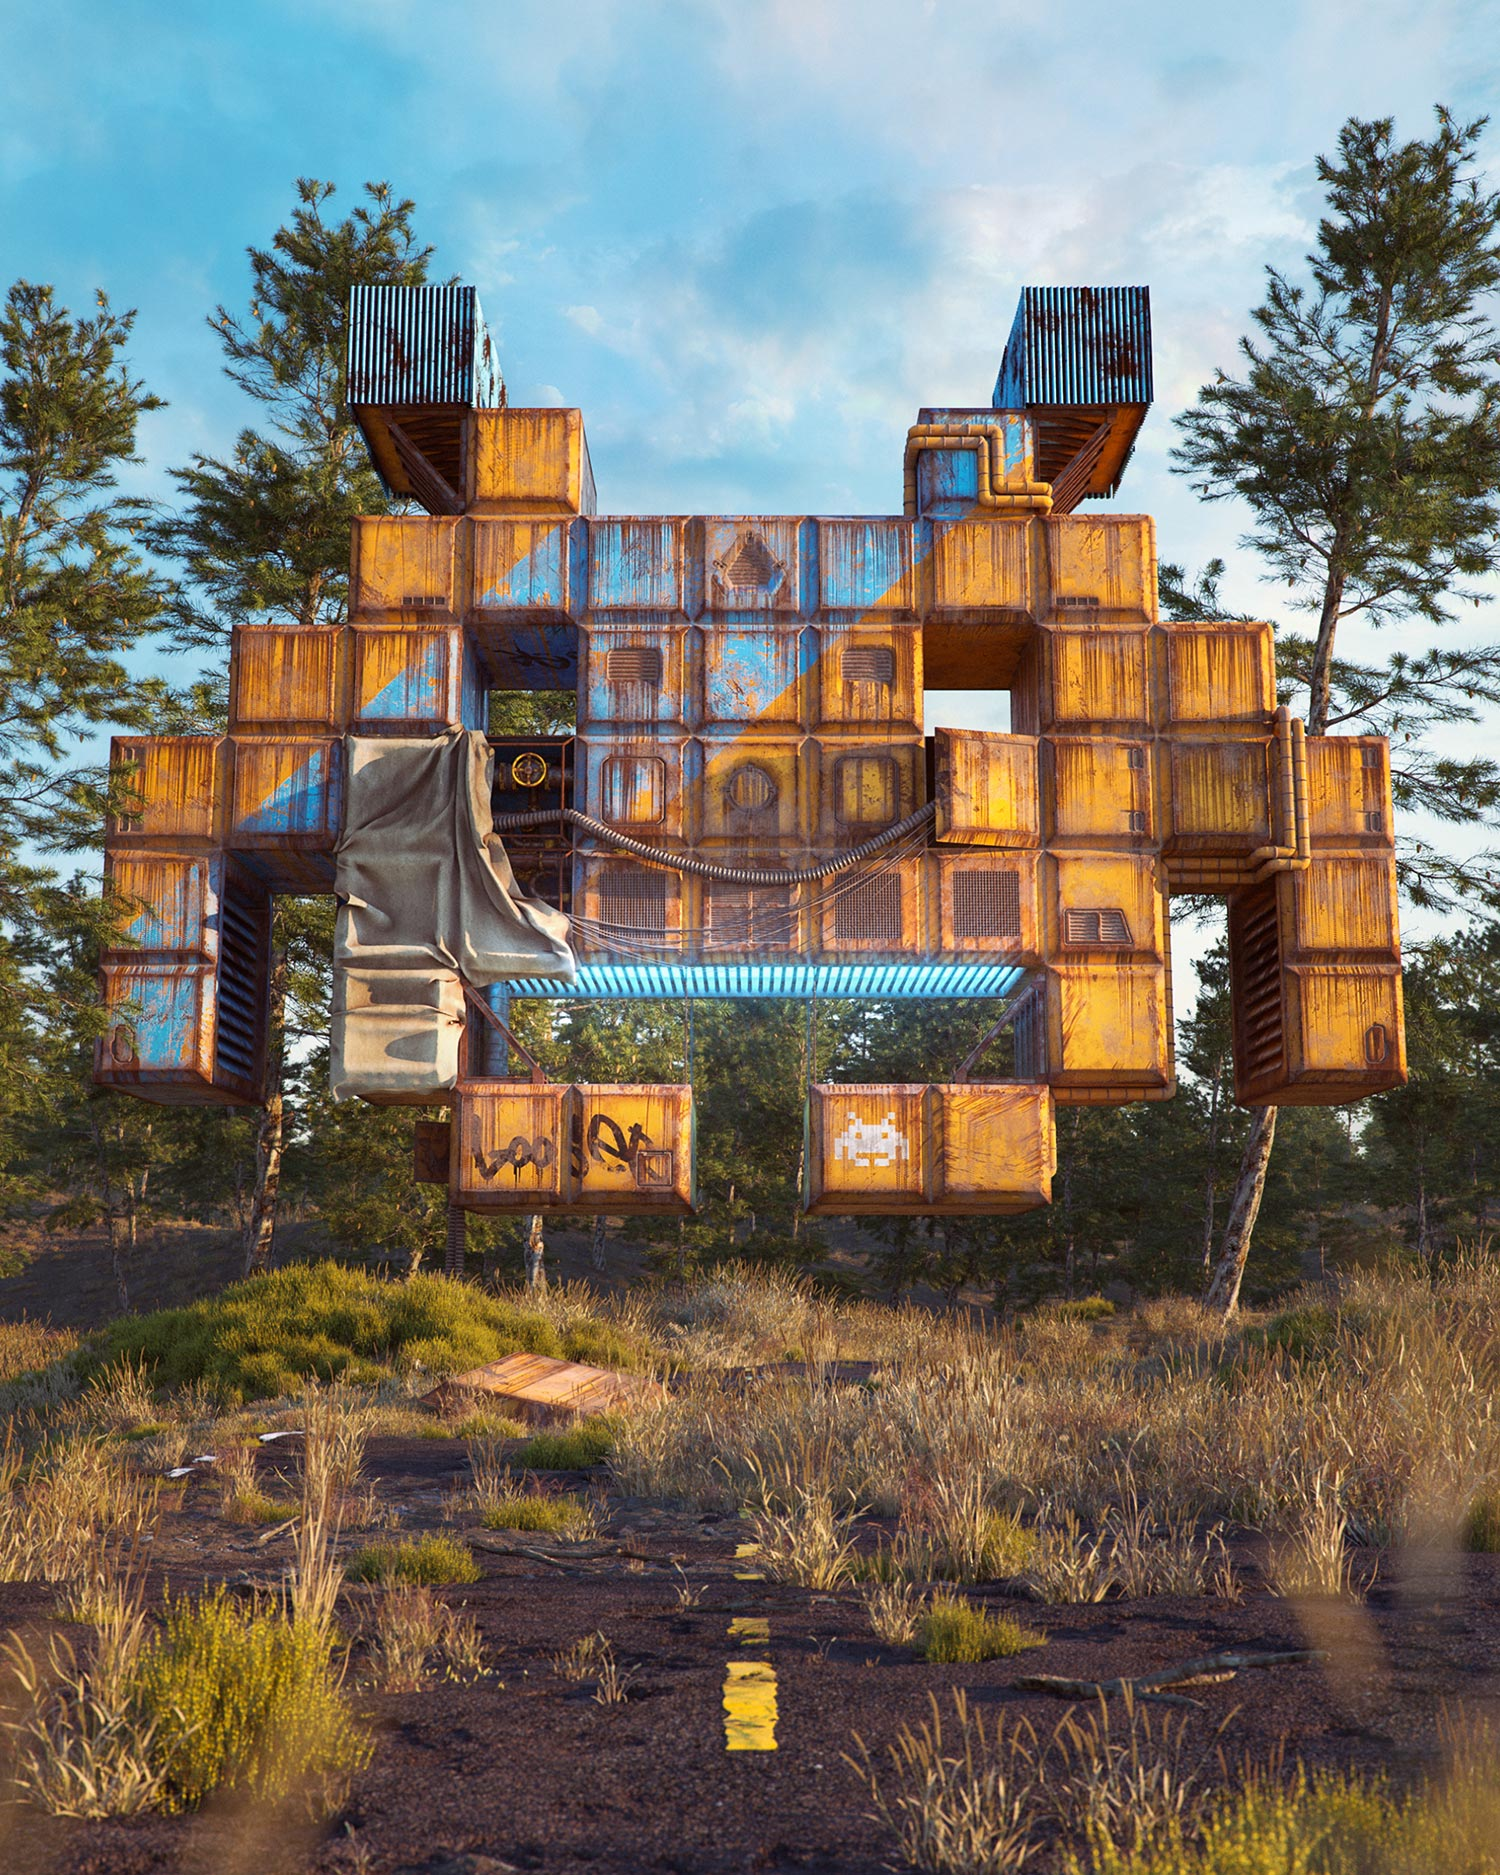 Filip Hodas - Pop culture dystopia, Space Invaders